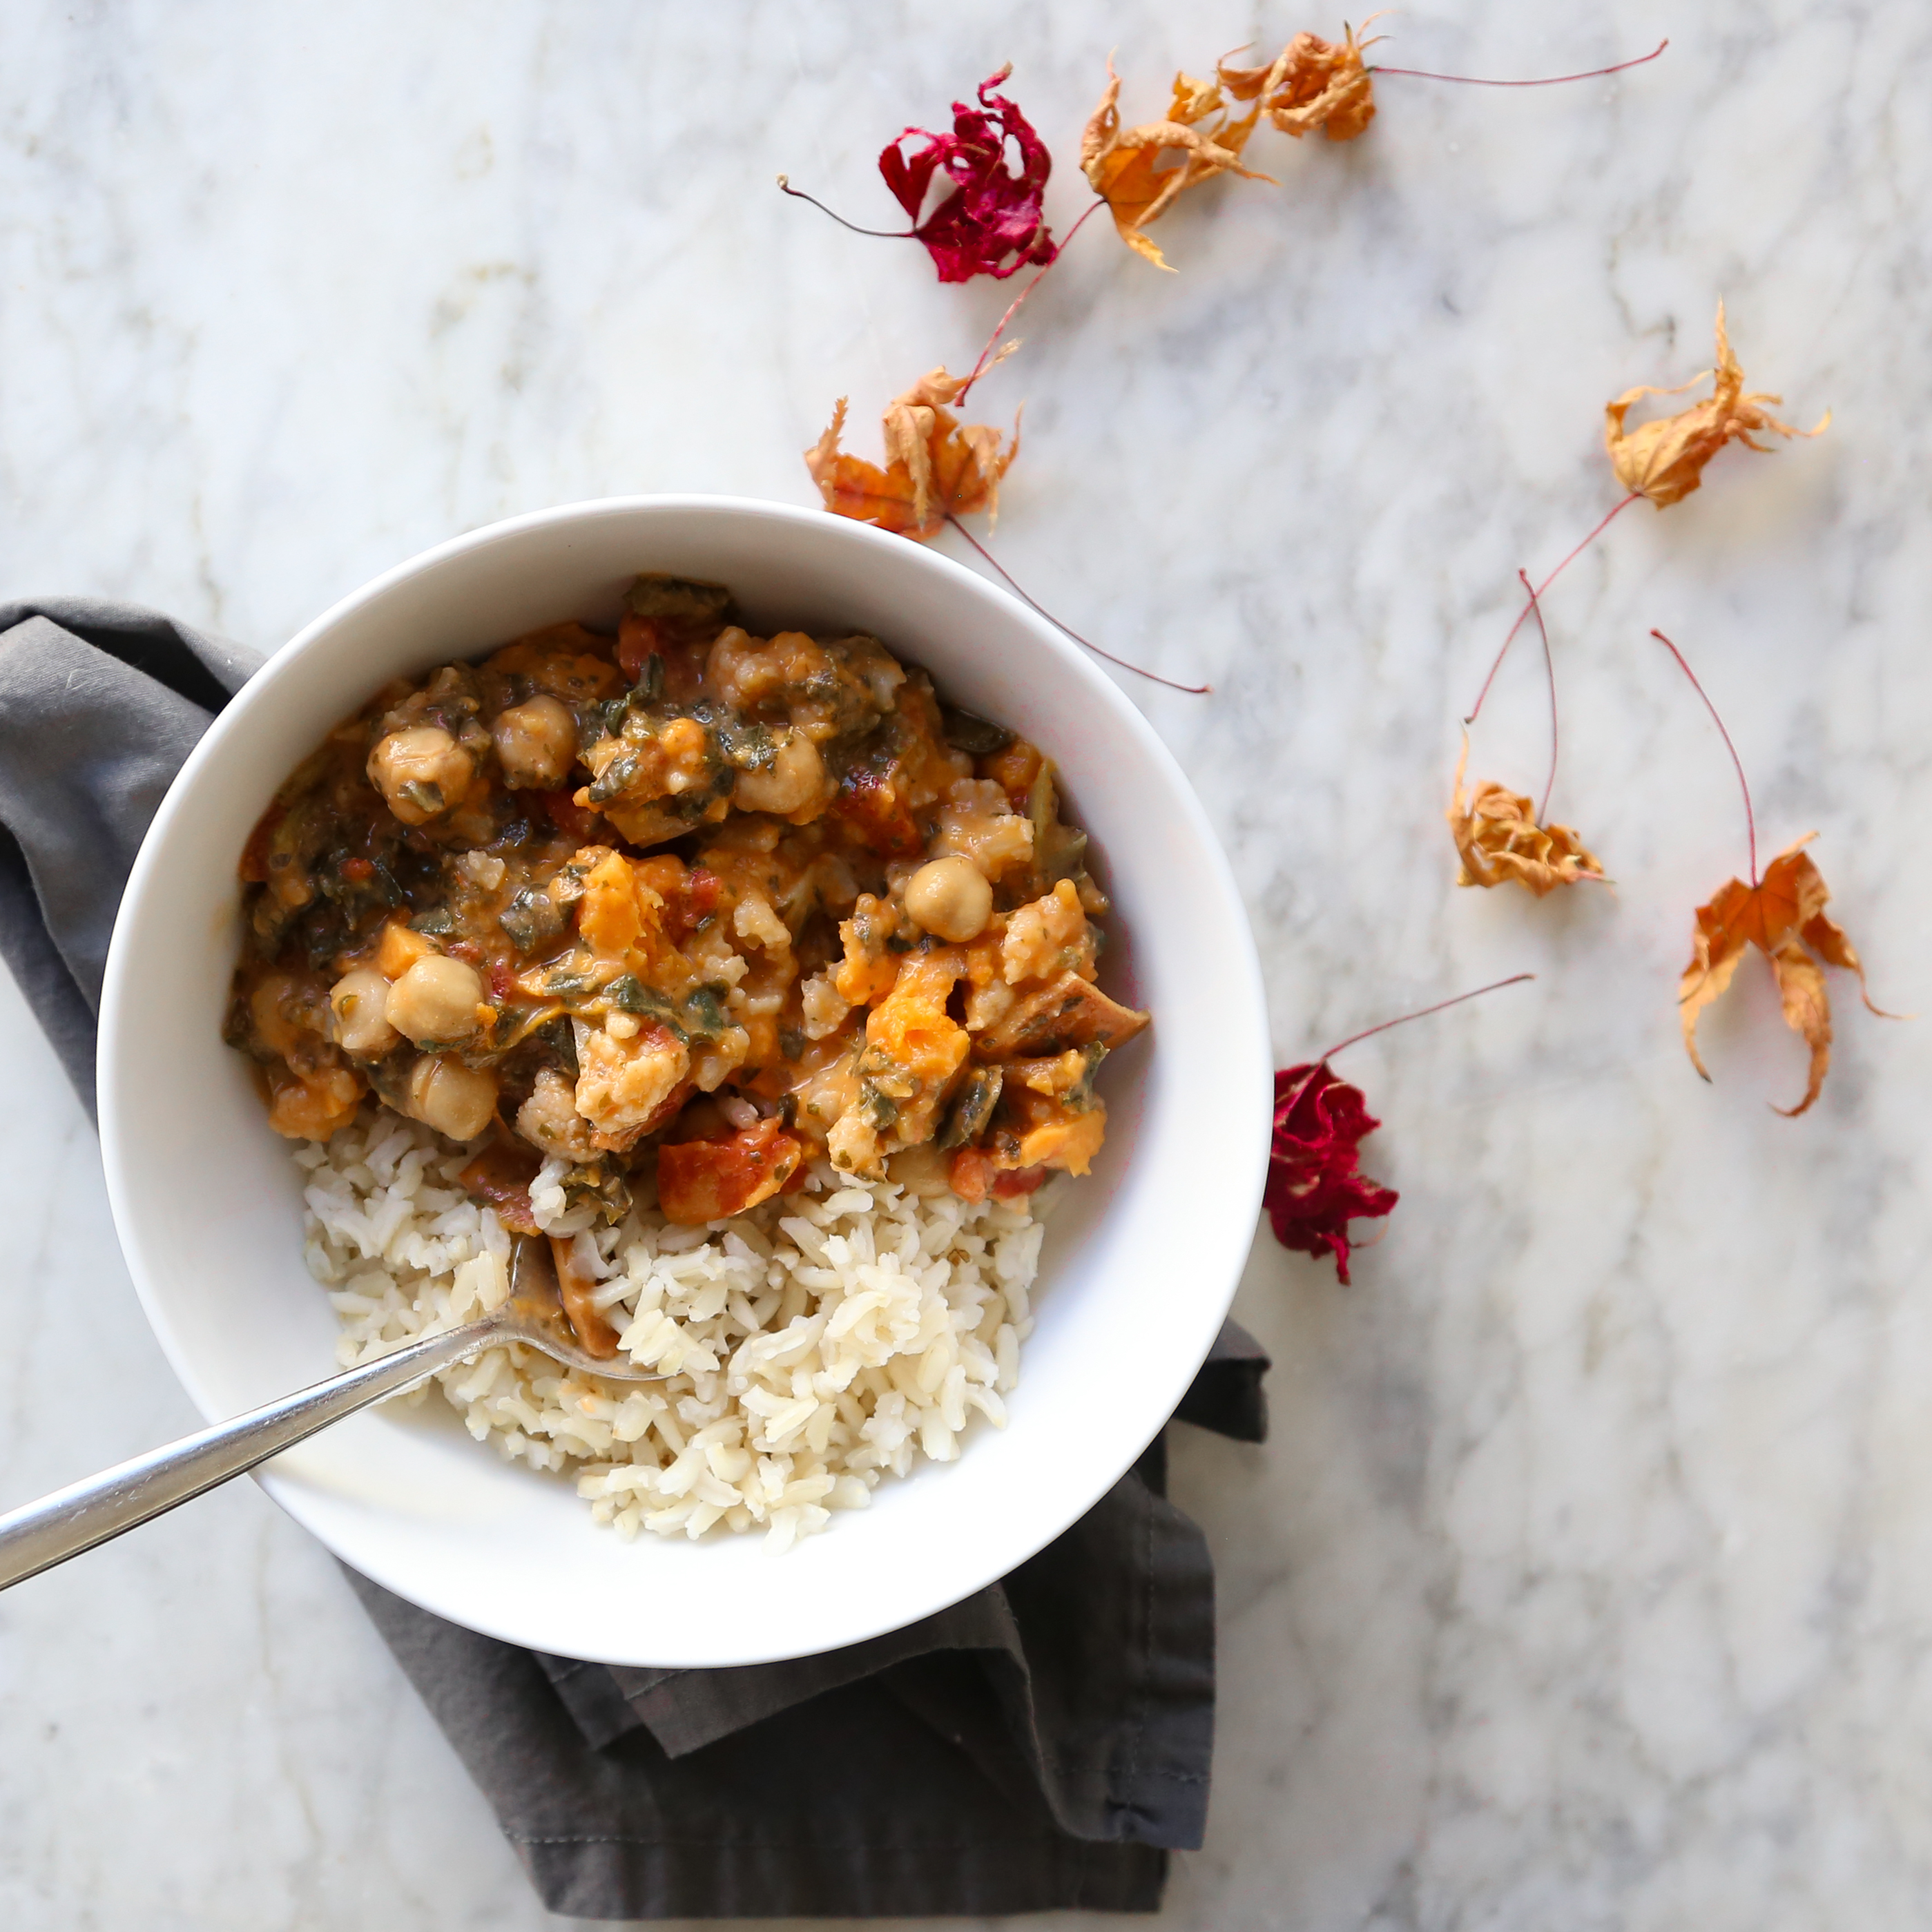 Vegan Coconut Confetti Thai Curry  Recipe with Cauliflower, Chickpeas, and Sweet Potato // inmybowl.com